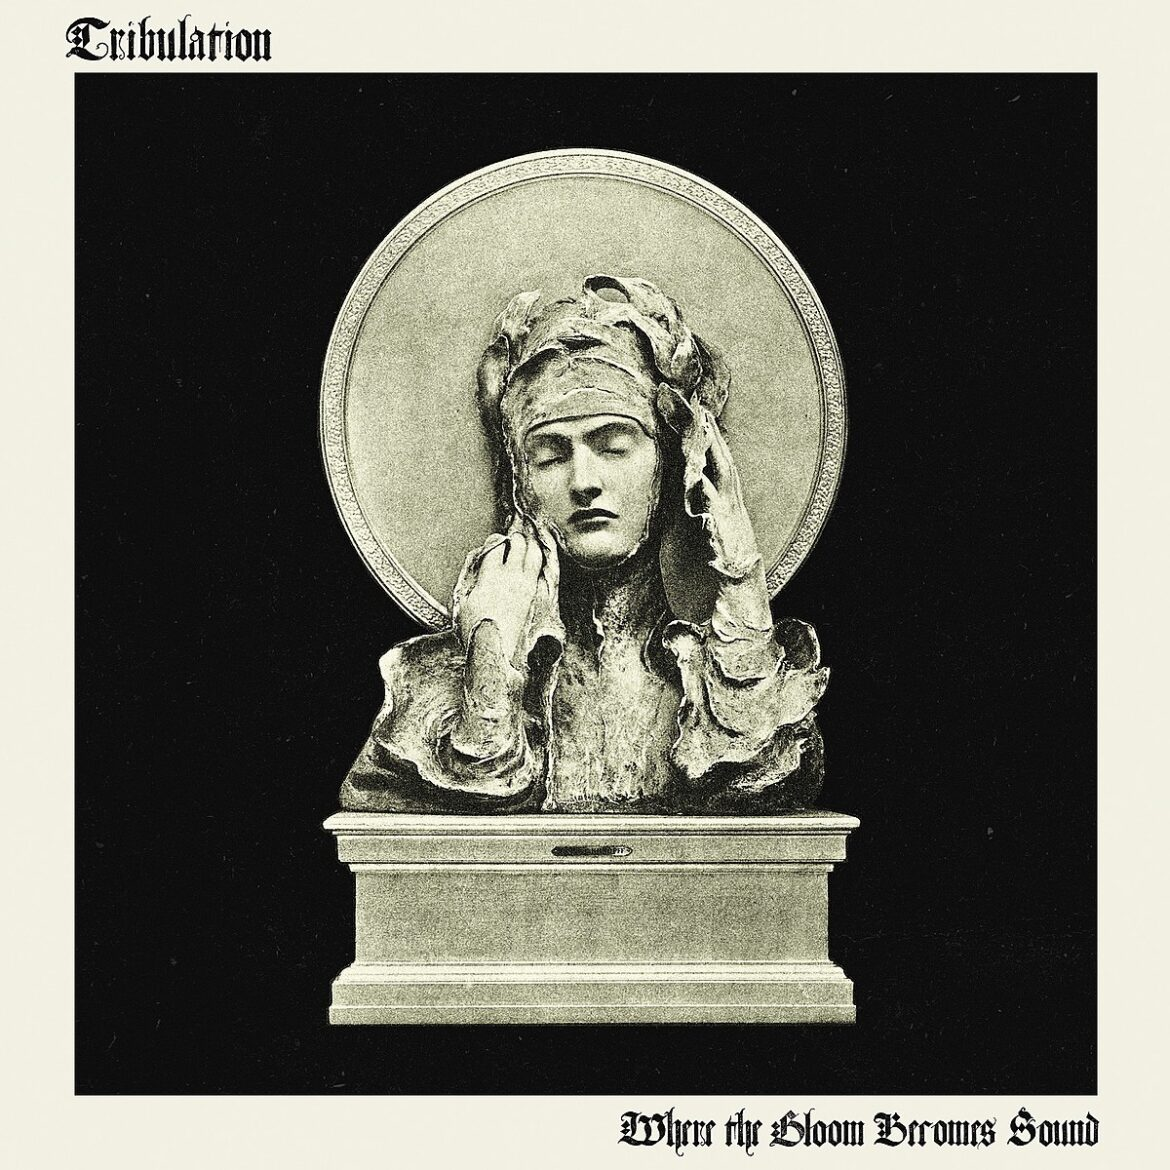 """Tribulation Enters A Numinous Realm """"Where the Gloom Becomes Sound"""" (Album Review)"""